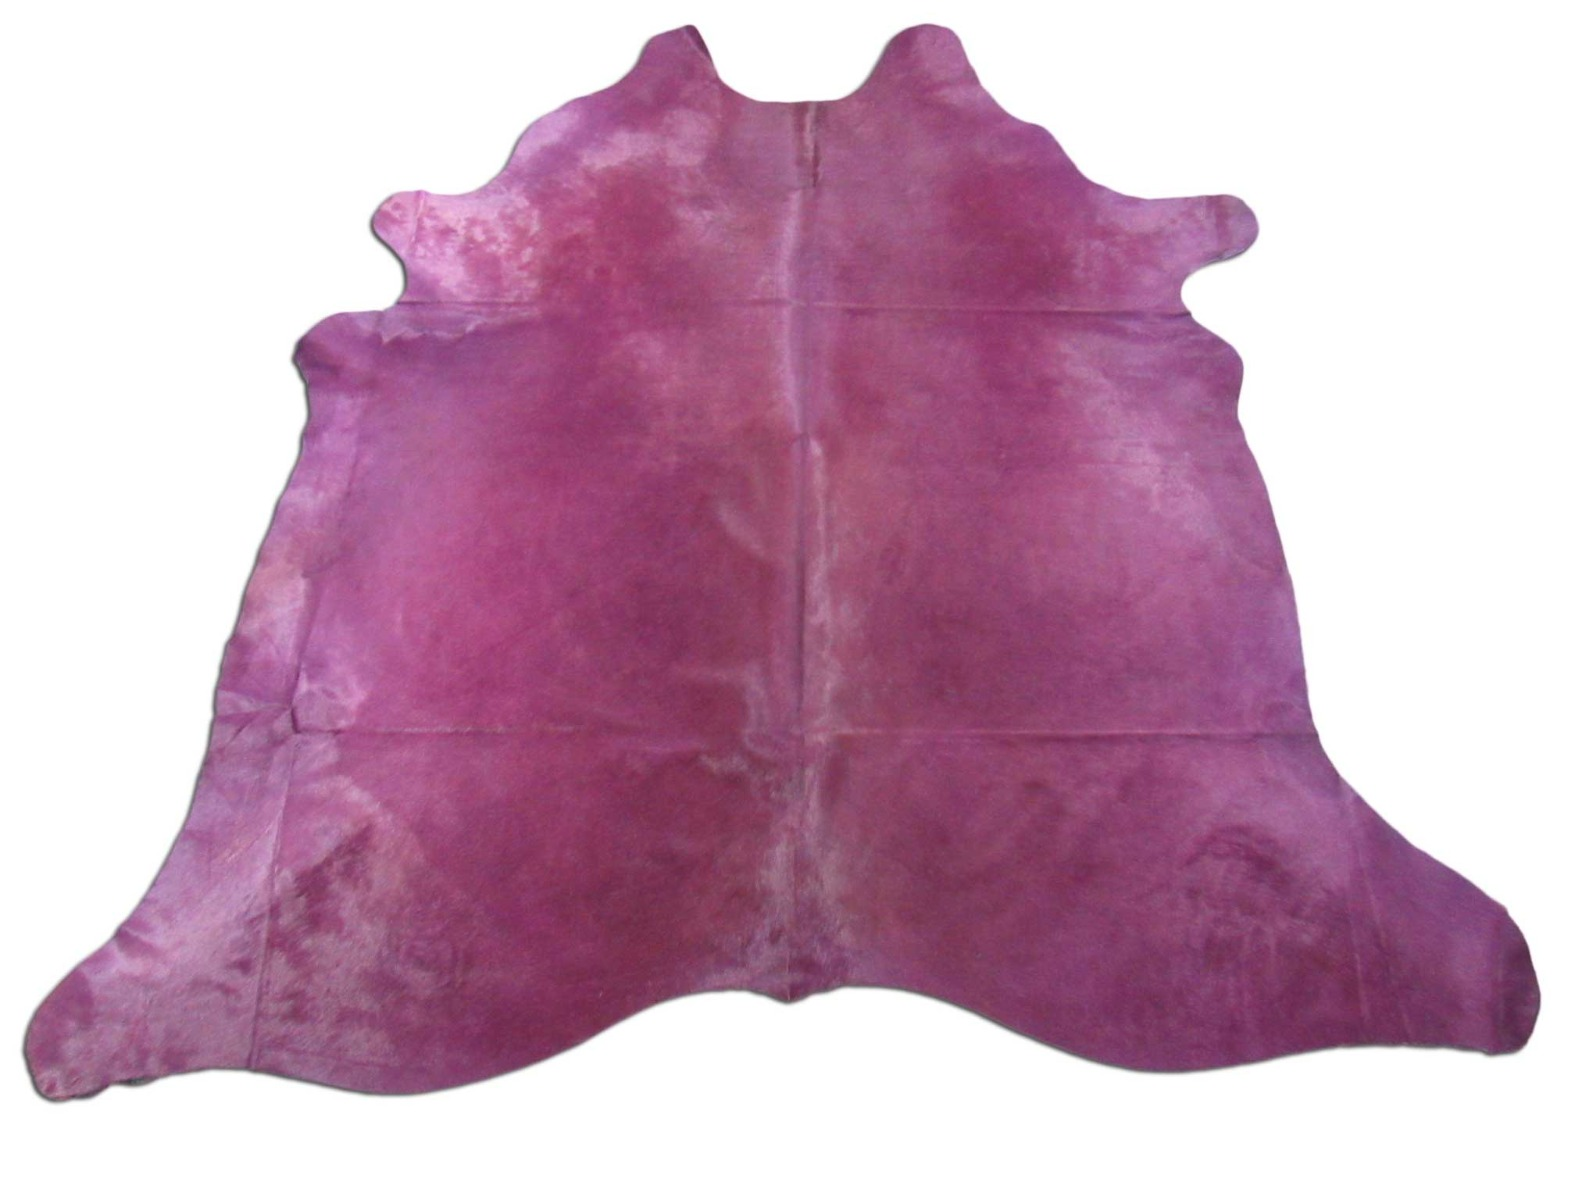 A-1455 Dyed Purple Cowhide Rug Size: 8' X 7 1/2'